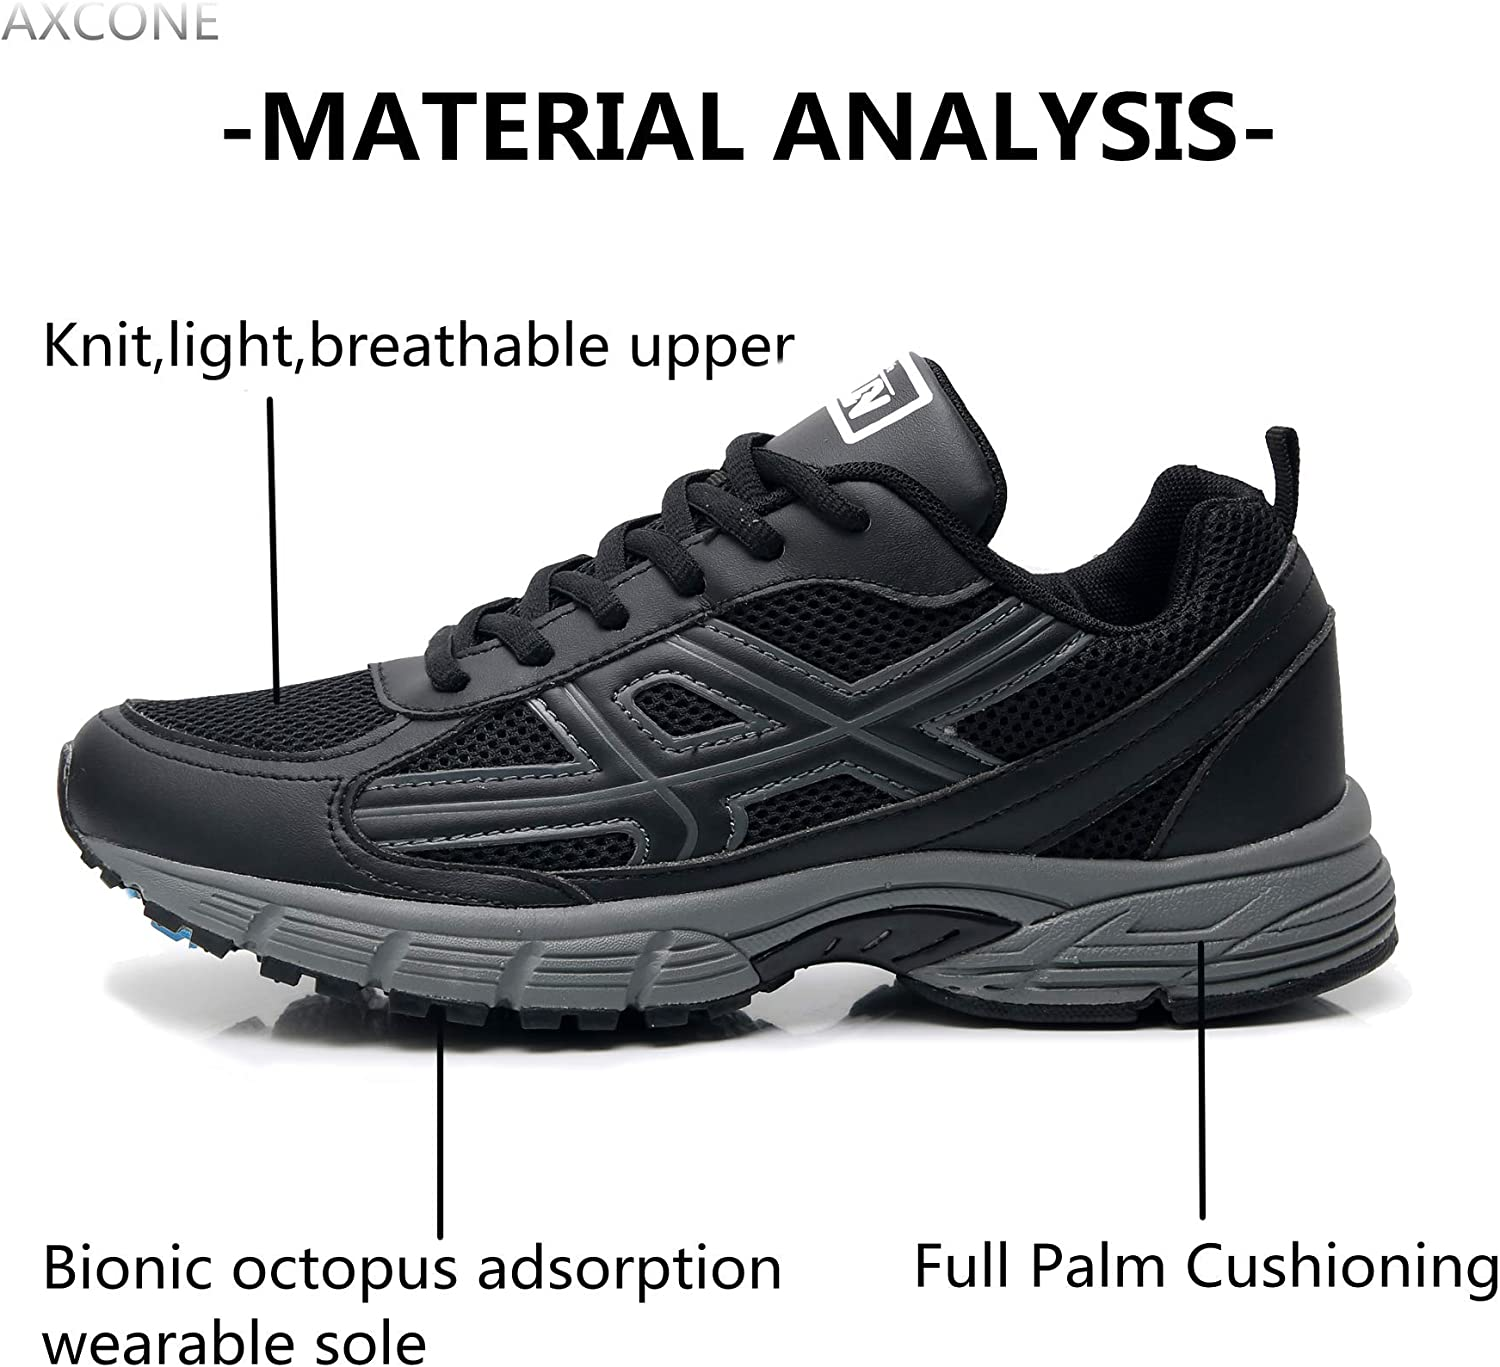 Axcone Homme Femme Running Baskets Chaussures Outdoor Running Gym Fitness Sport Sneakers Style Multicolore Respirante